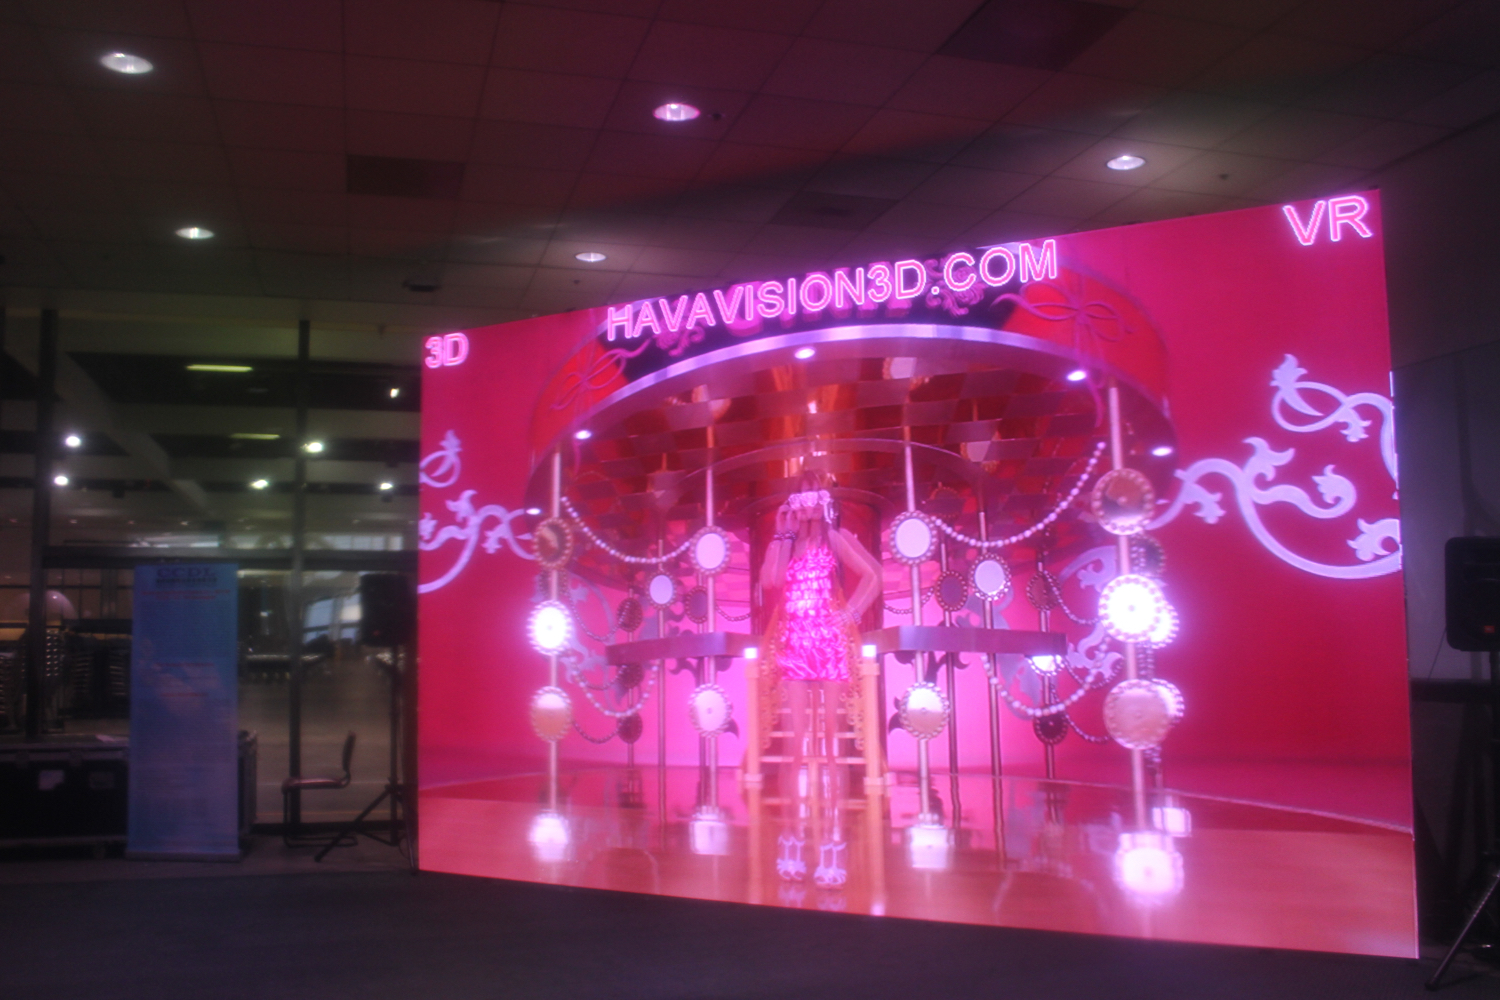 This was amazing, very smooth 3D projections by  Havavision .They handed out 3D glasses for an immersive mall experence.